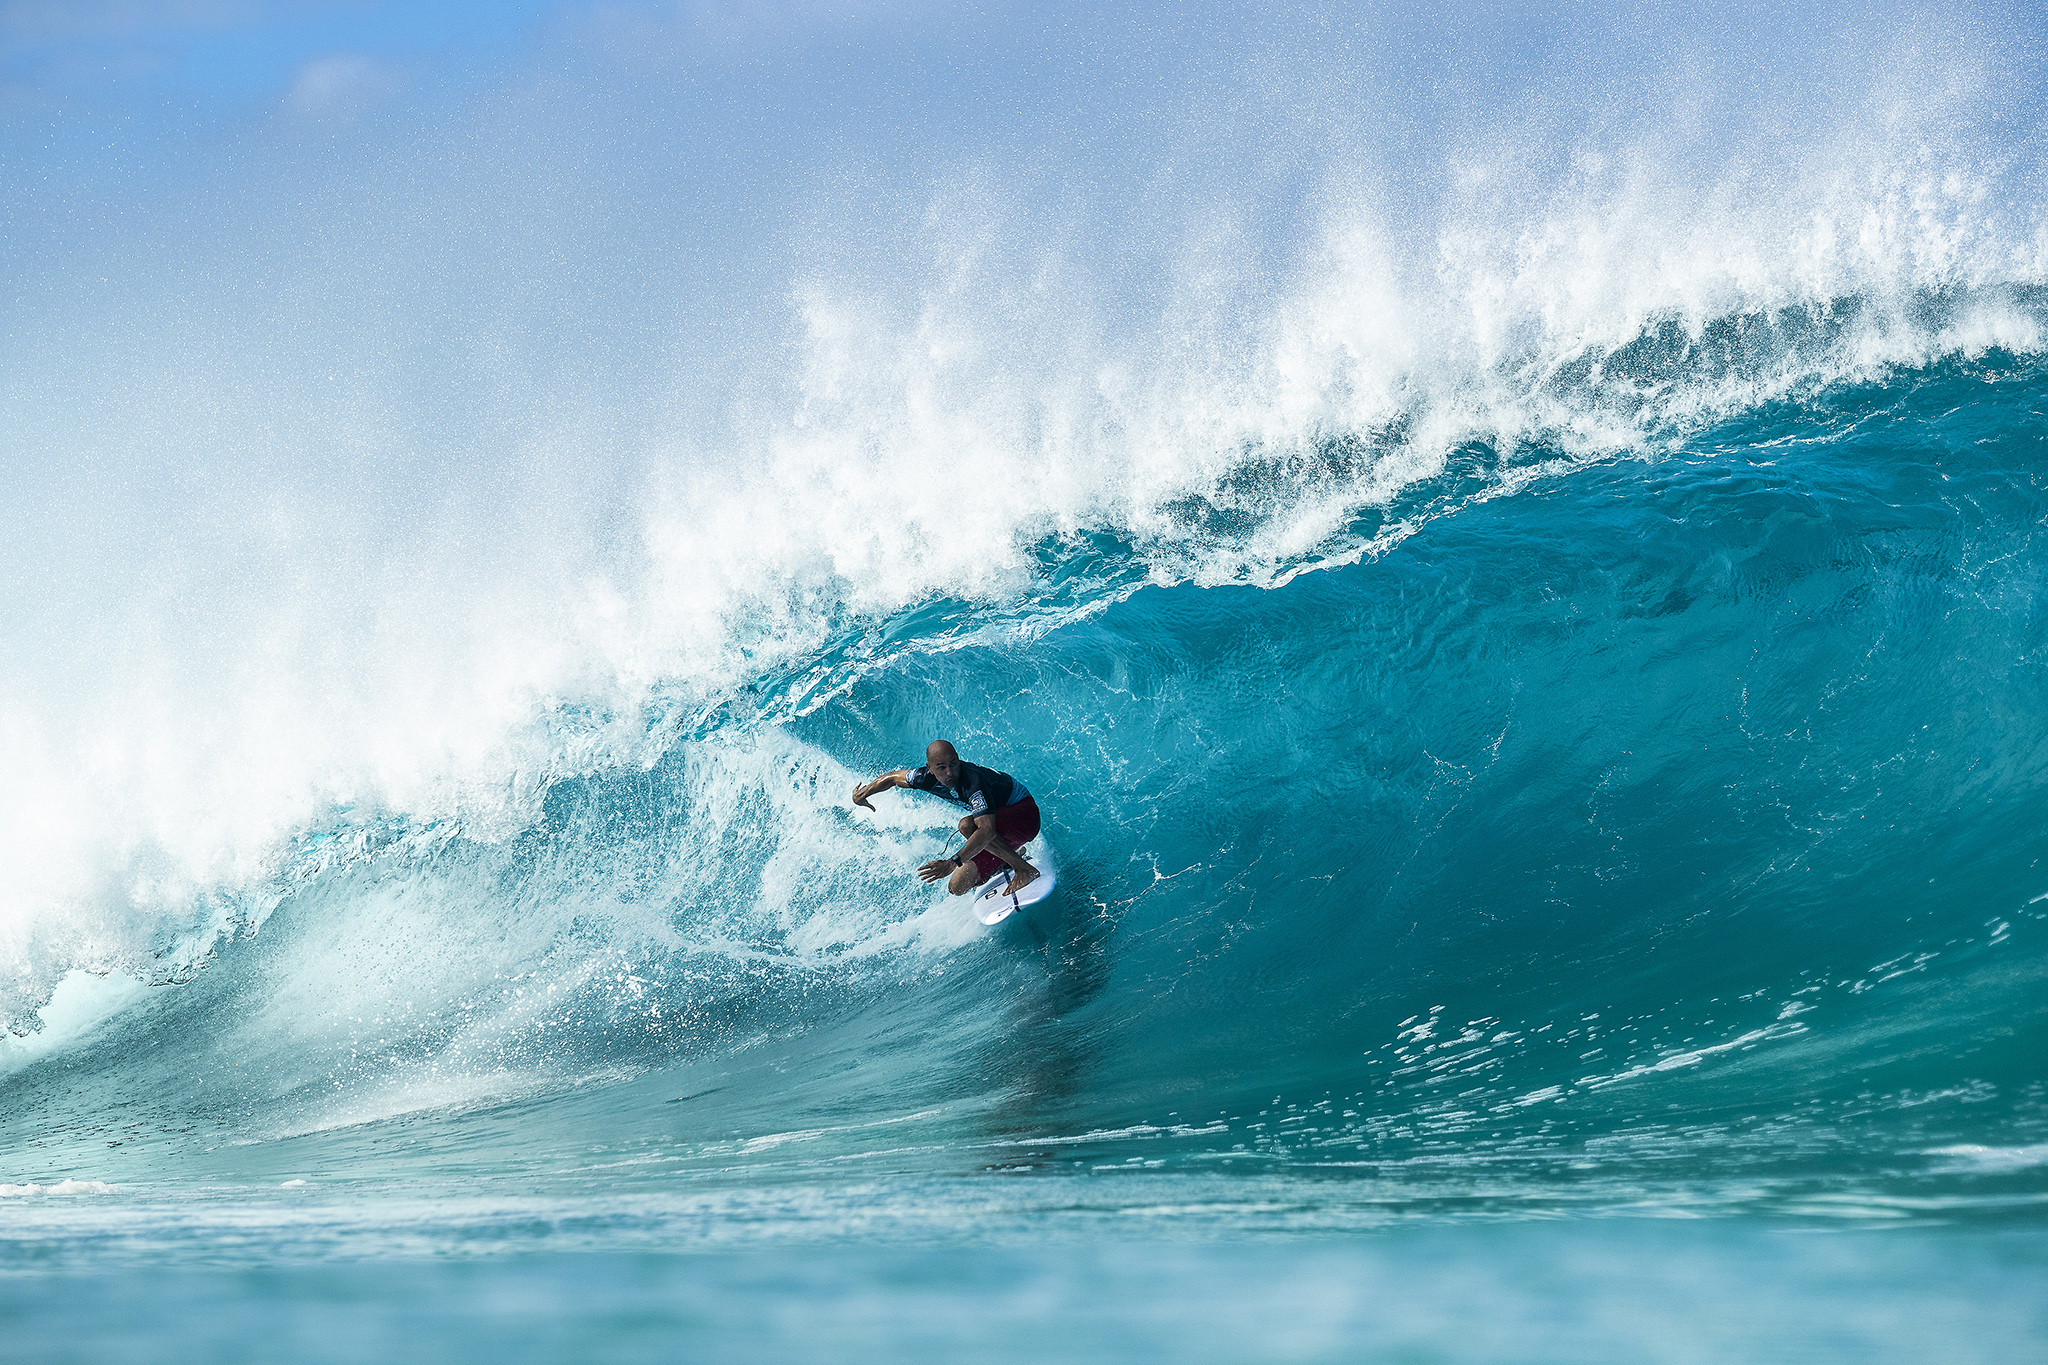 32d76a4606c4f9 11X World Champion Kelly Slater (USA) advances to Round 3 of the 2018  Billabong Pipe Masters after winning Heat 6 of Round 2 at Pipeline